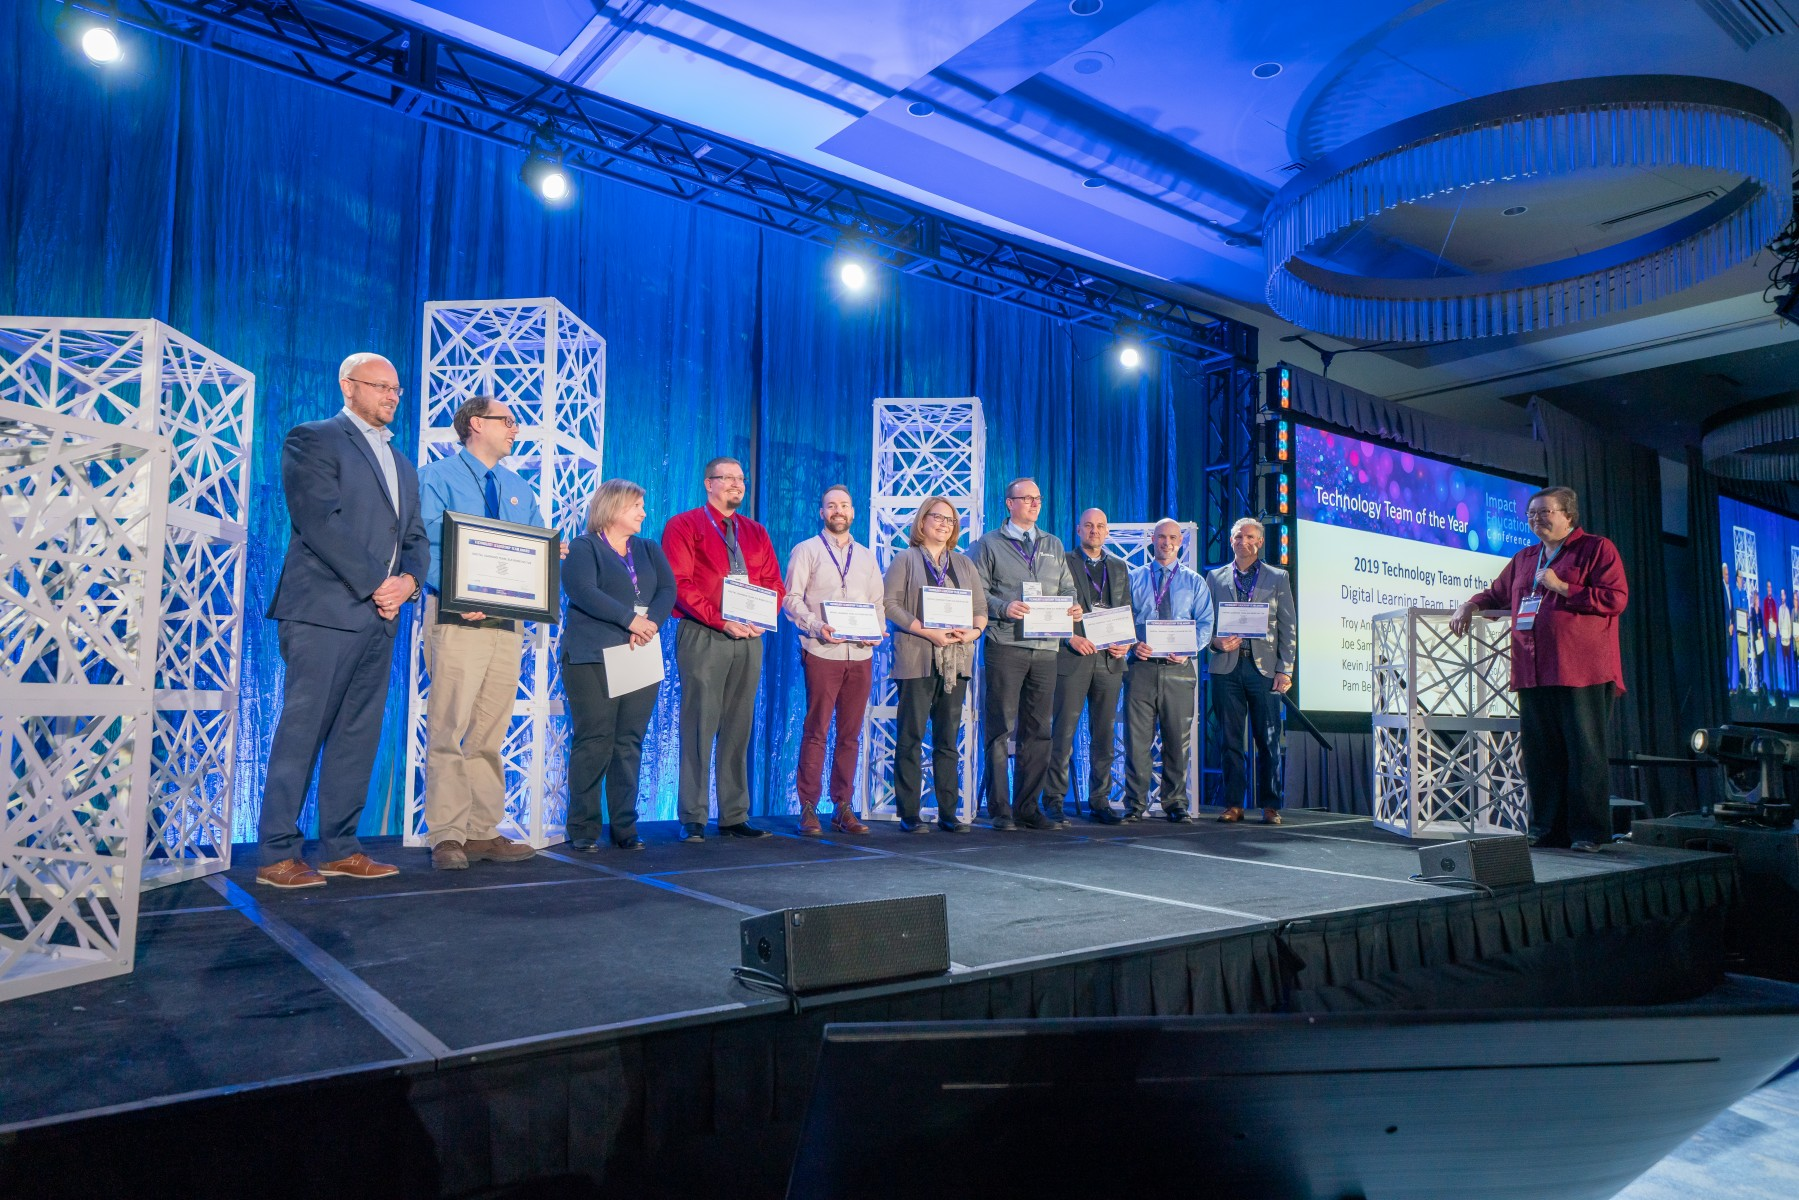 Technology specialists and leaders from the Elk River Area School District were named the 2019 Technology Team of the Year at the Impact Education Conference in Minneapolis.